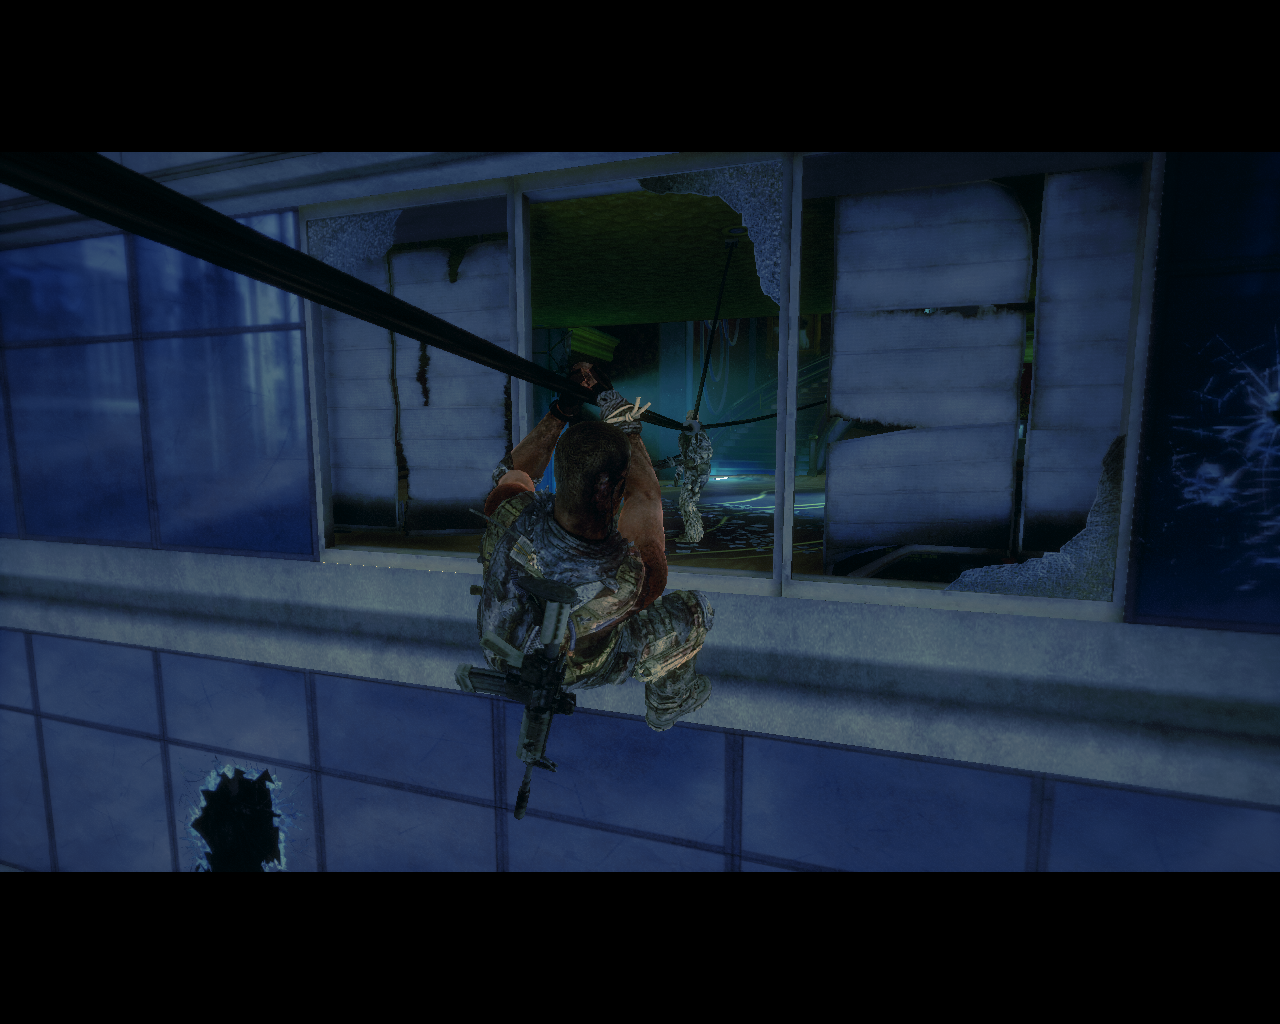 Spec Ops: The Line Windows Rappelling (instant kill for a poor guy on the other side)